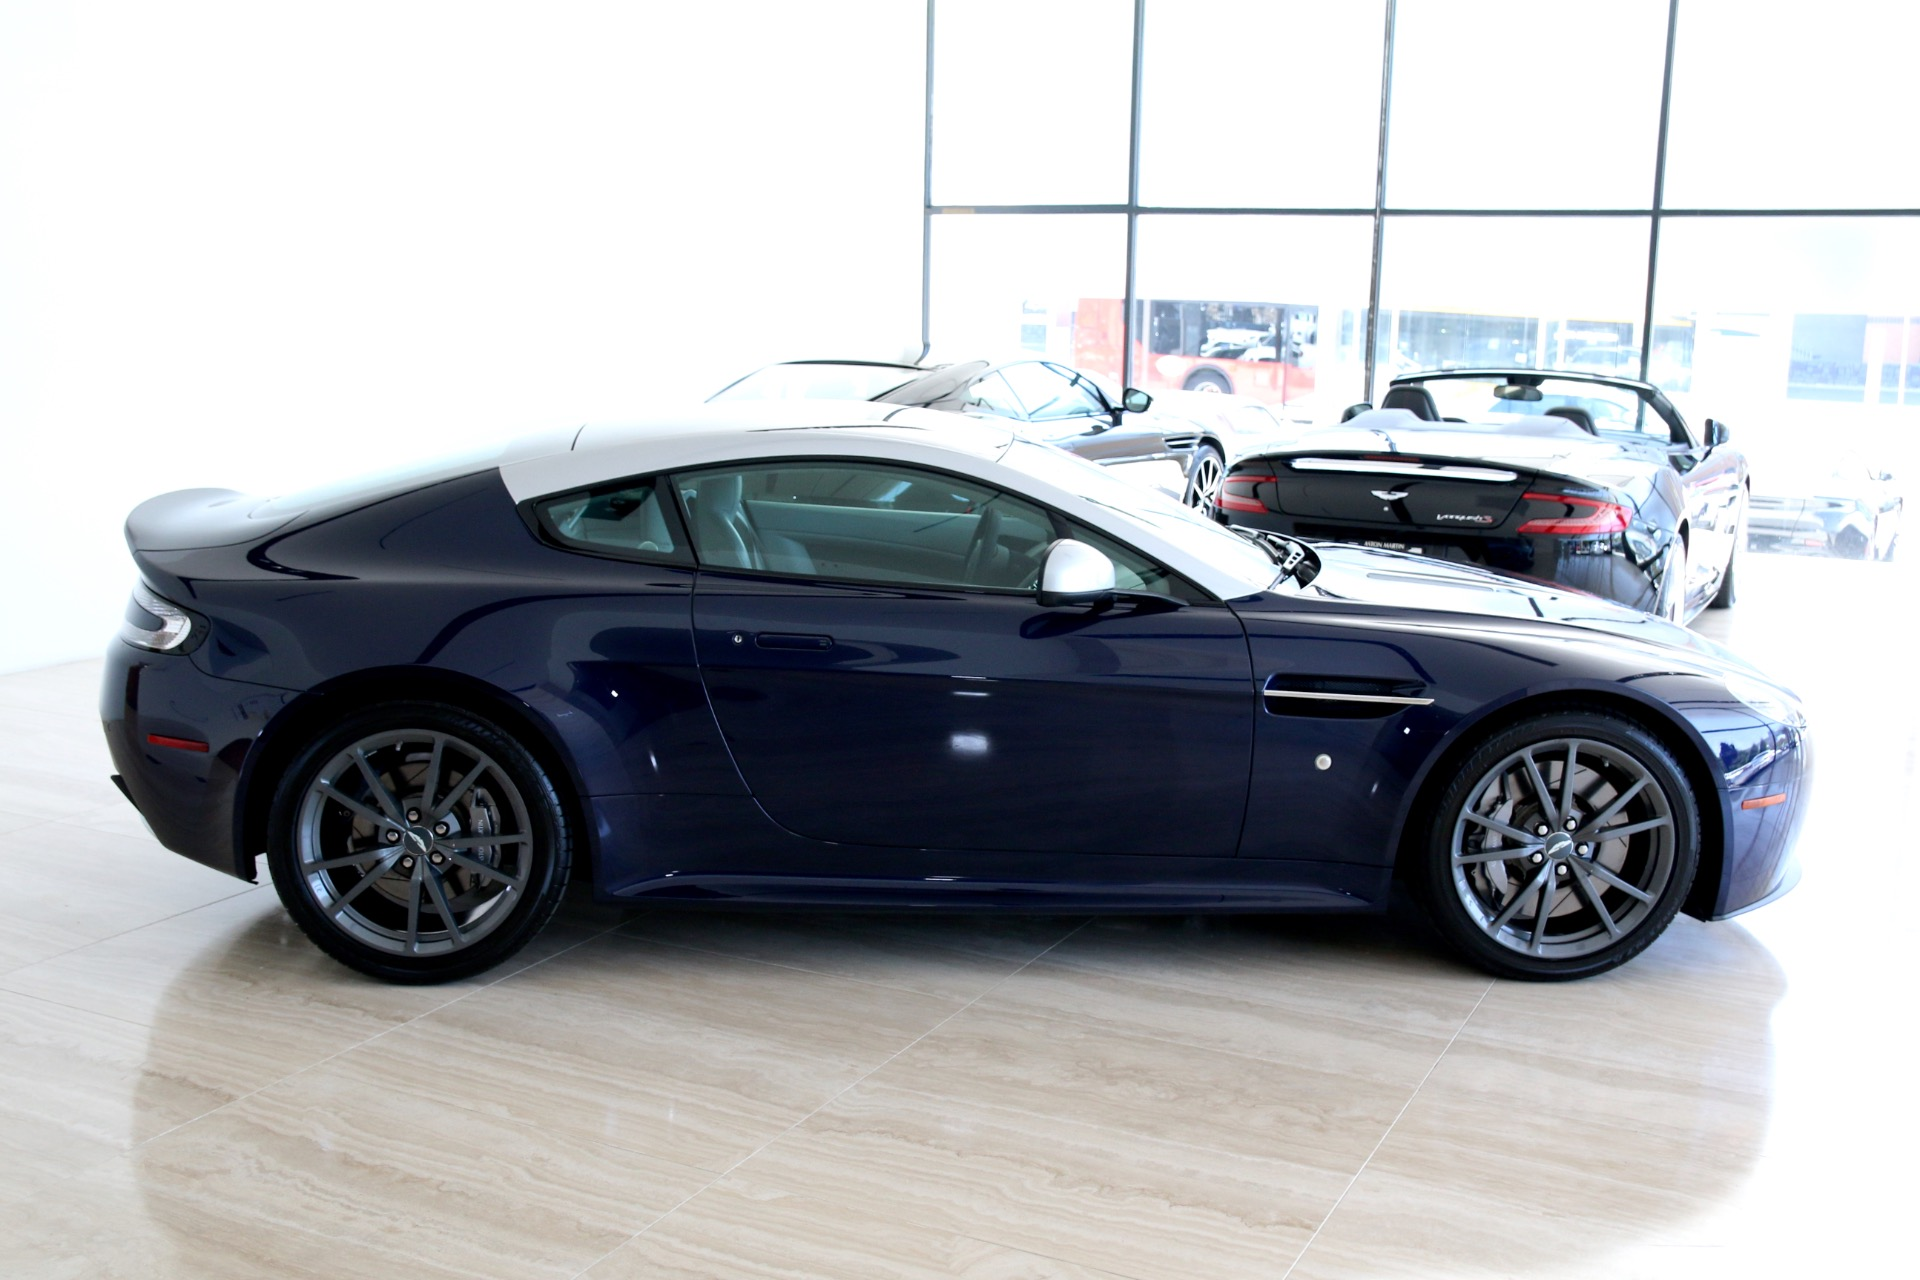 2015 Aston Martin V8 Vantage Gt Stock Pg14118a For Sale Near